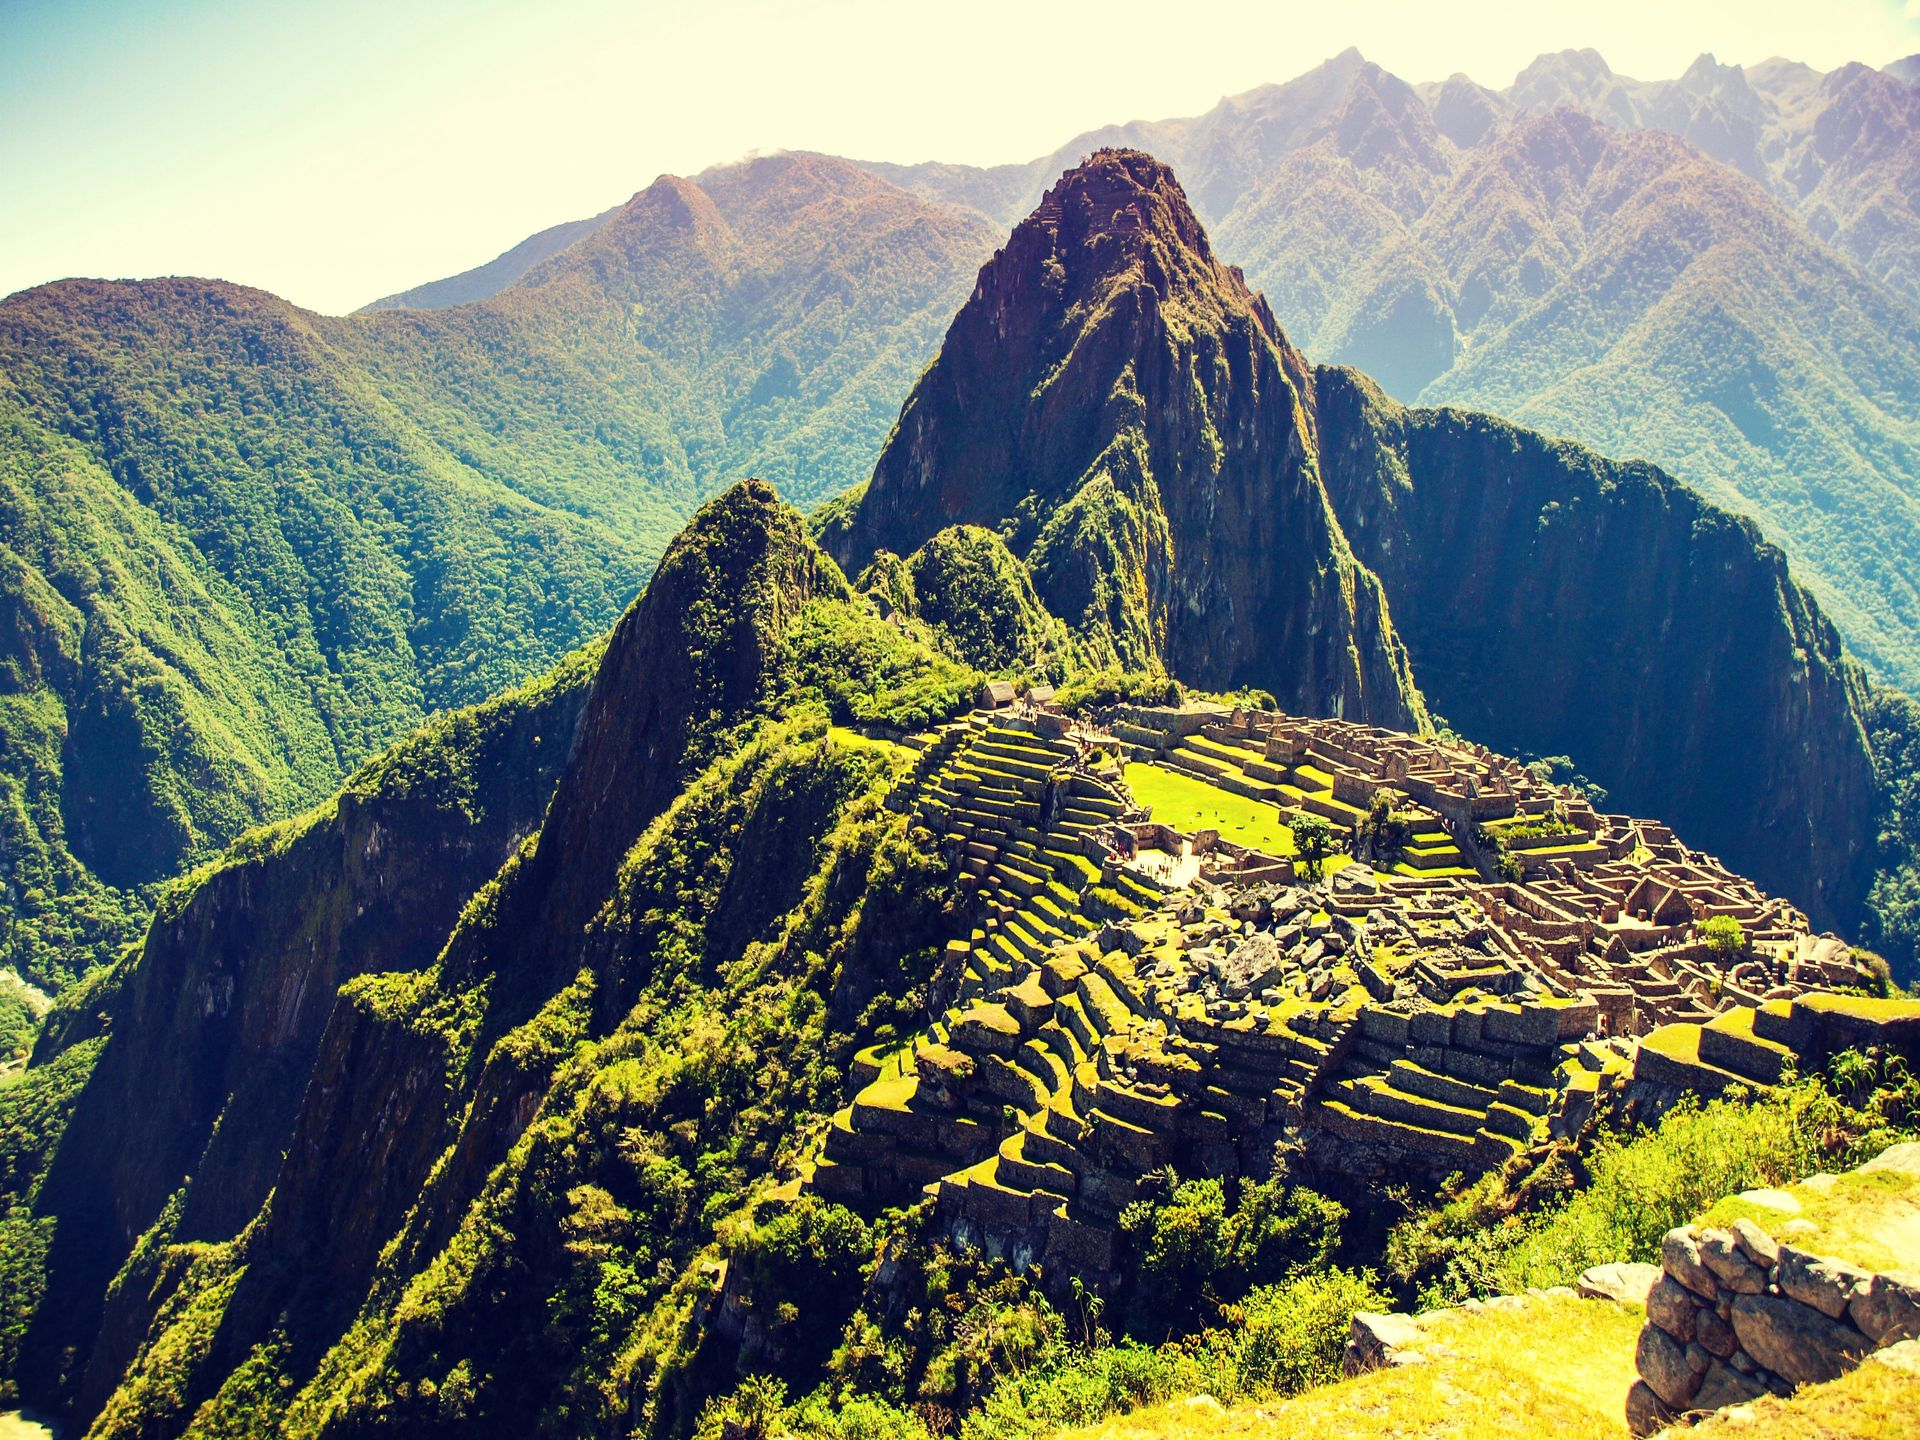 Inca Jungle Trek, Rainbow Mountain & Salt Flats Machu Picchu, Cusco, Peru #3296cbd2-16d8-439f-85f2-f263046ce190